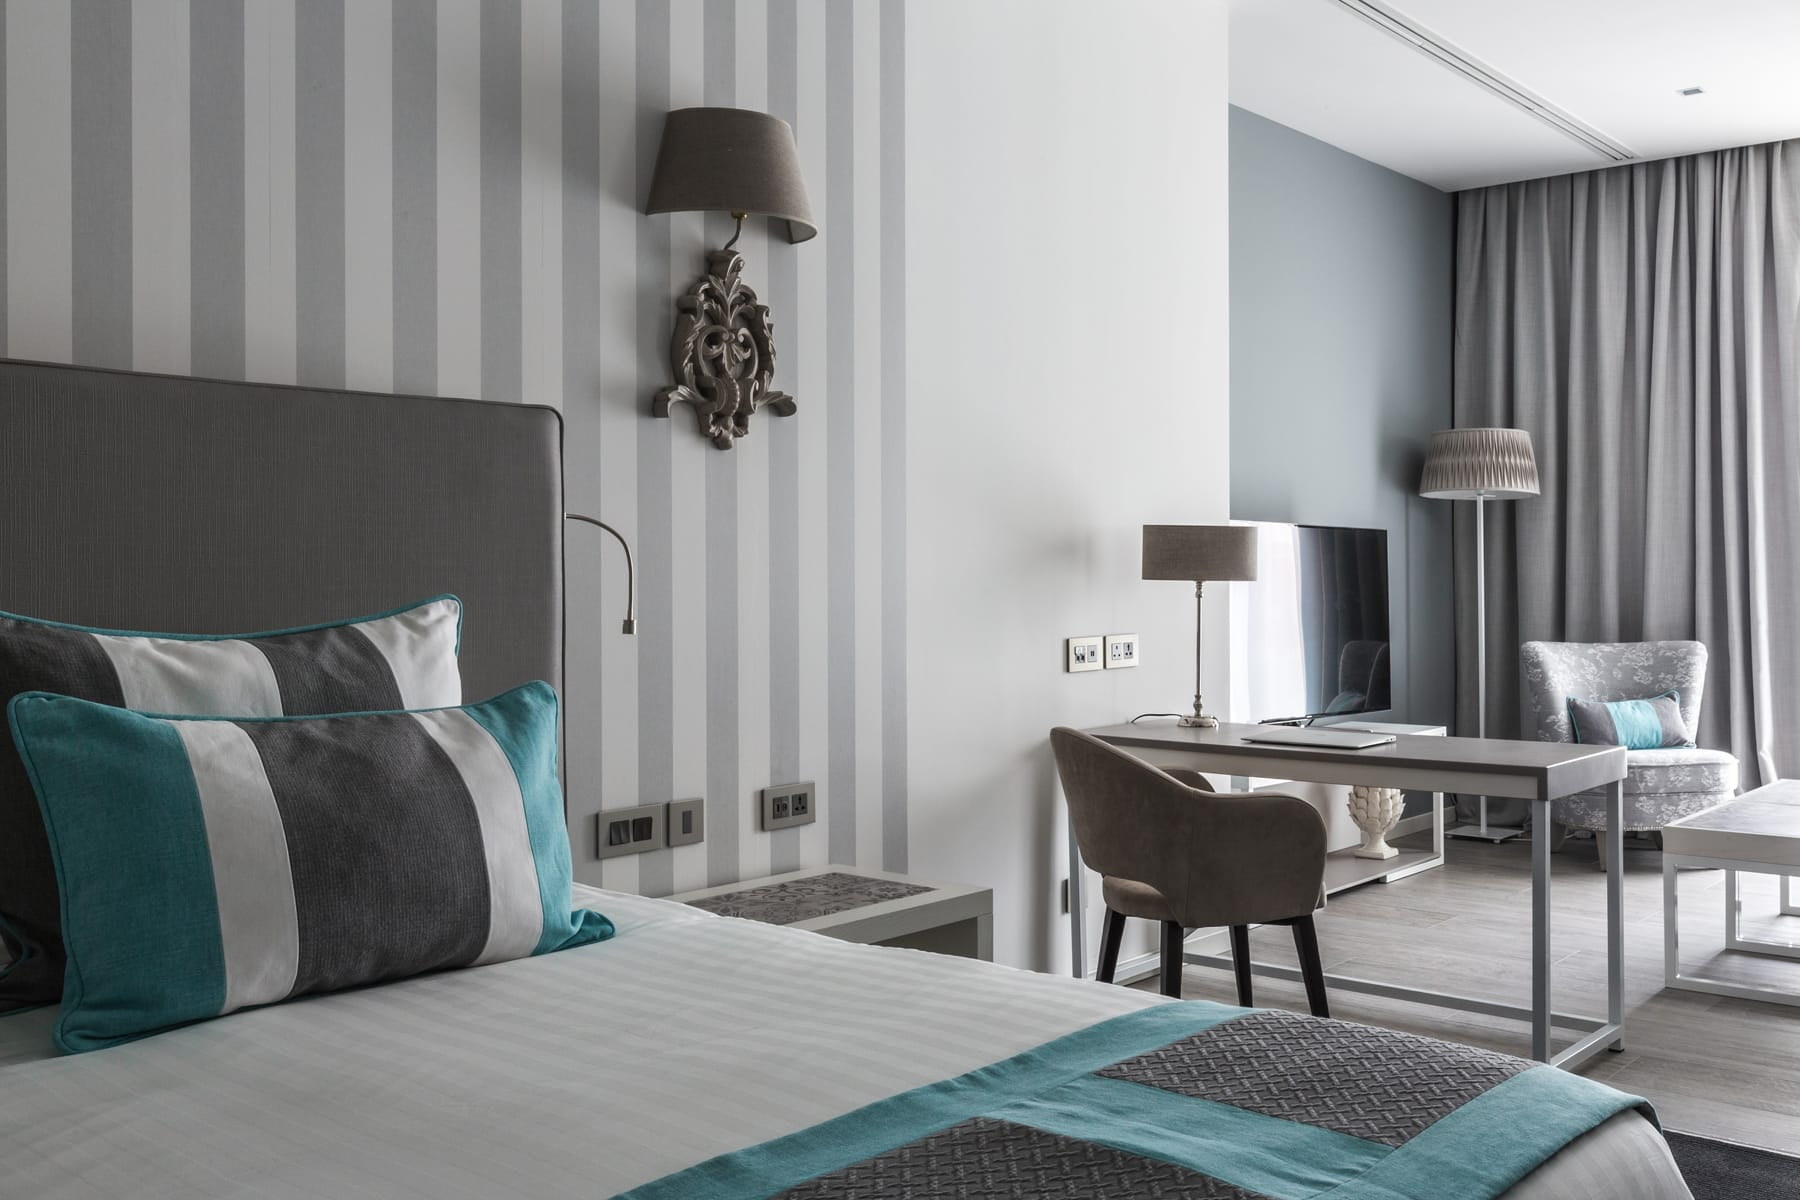 luxury boutique suites in Malta